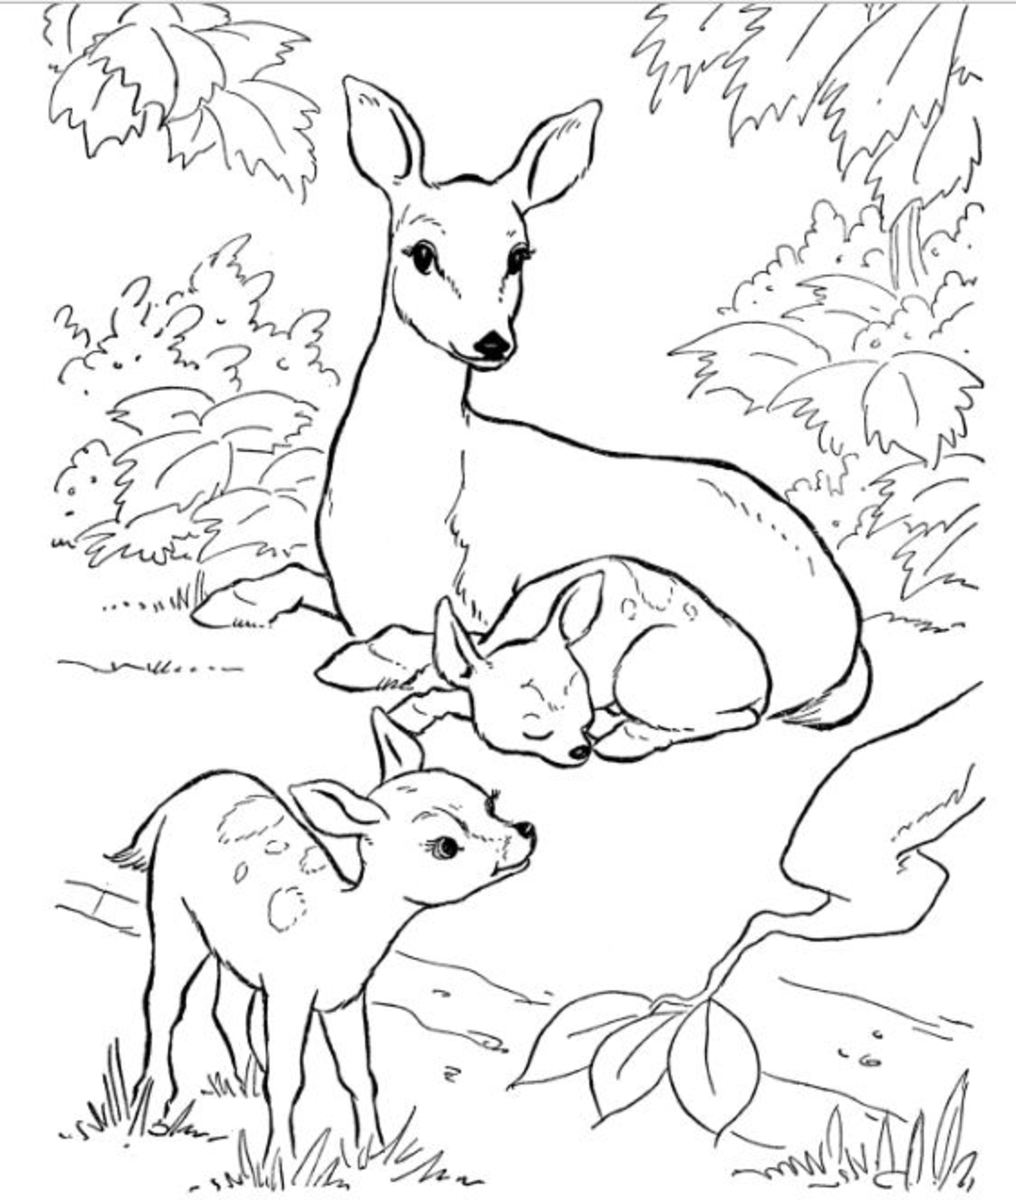 animal printable coloring pages free printable realistic animal coloring pages at printable animal pages coloring